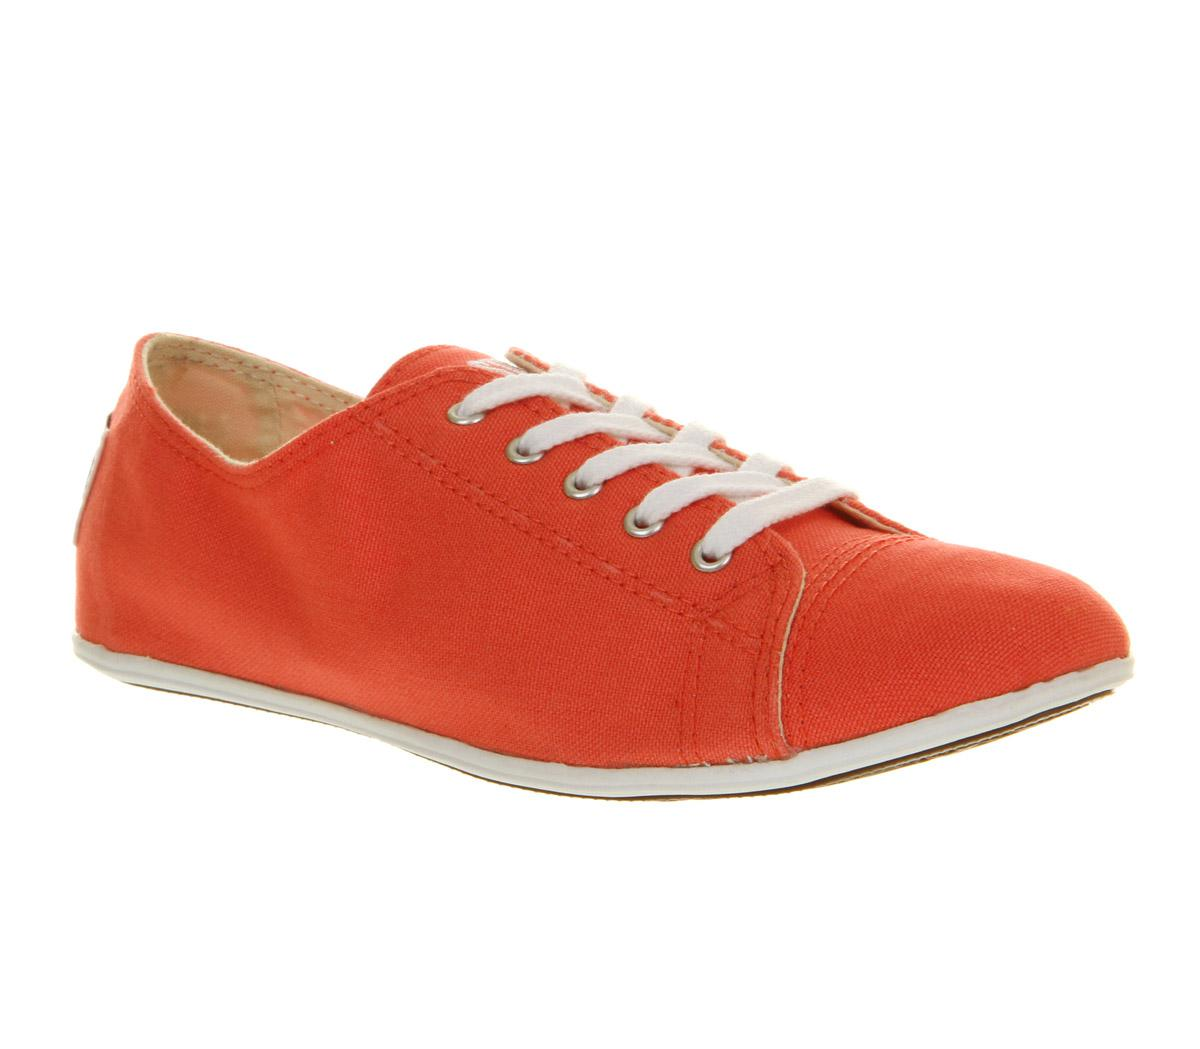 66d918ffe884 Lyst - Converse Ctas Playlite in Orange